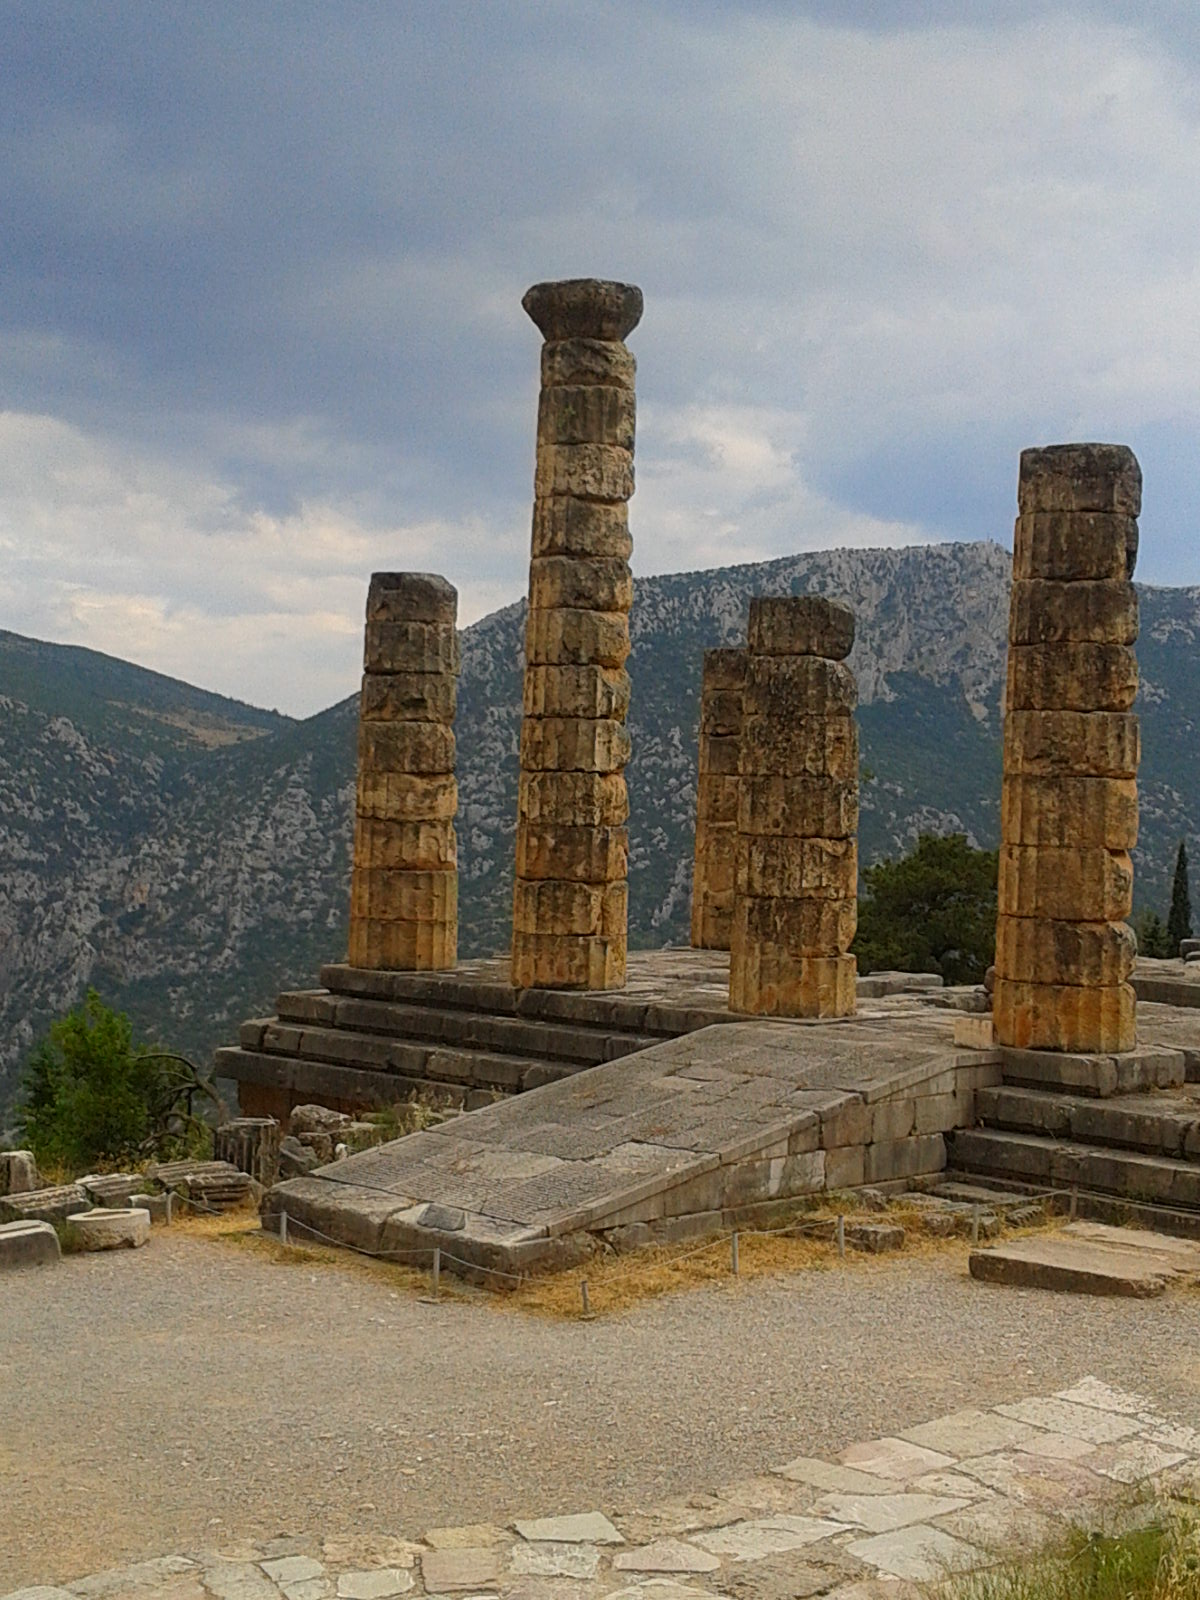 The Temple of Apollo in Delphi - Click Image Below to Follow Link: